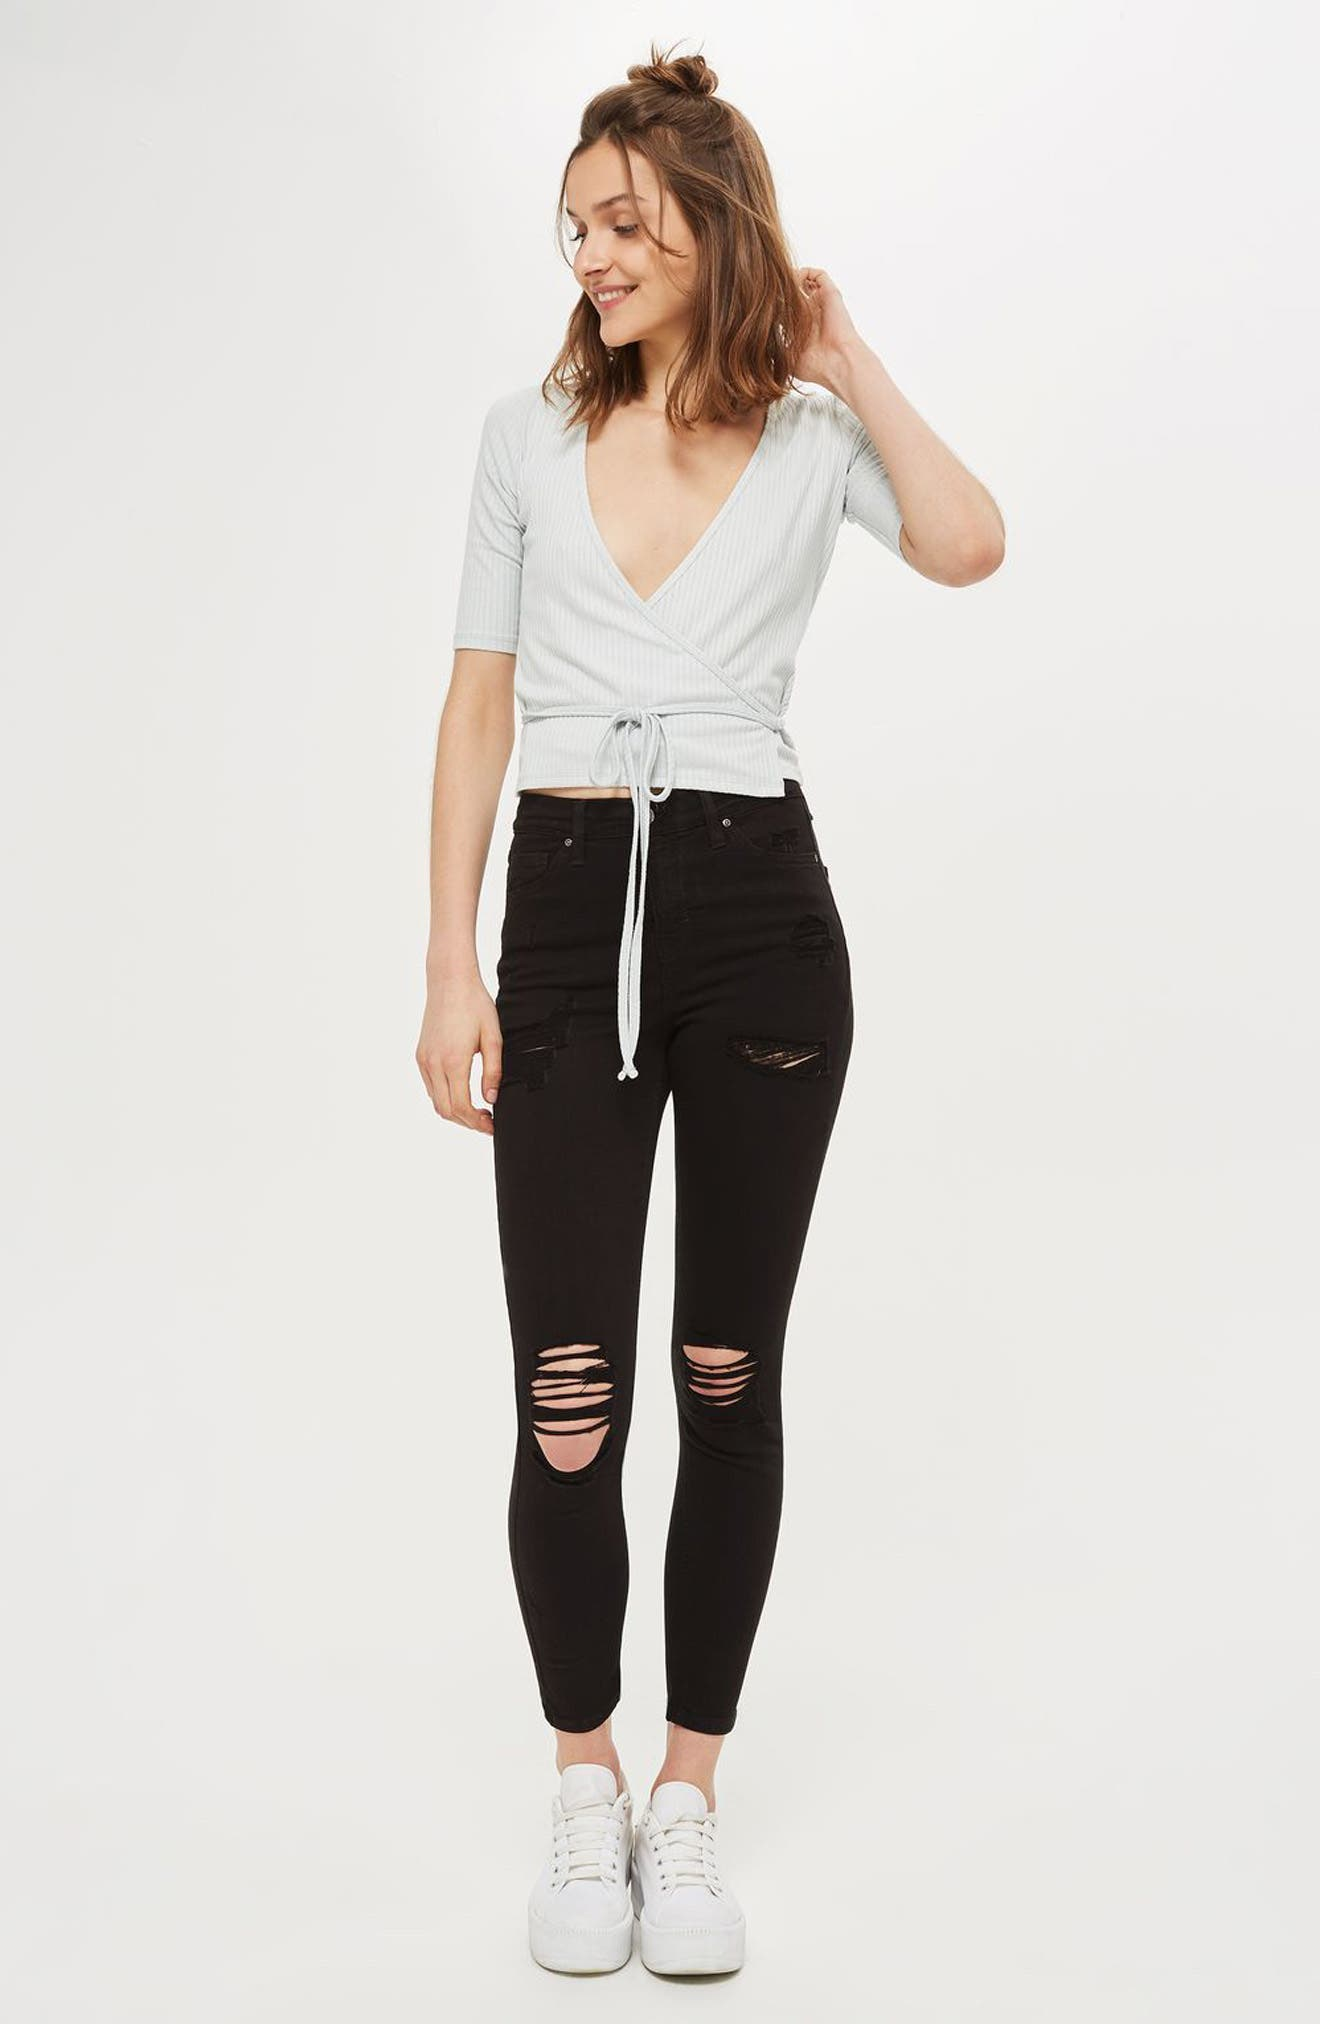 Topshop Ripped High Waist Ankle Skinny Jeans